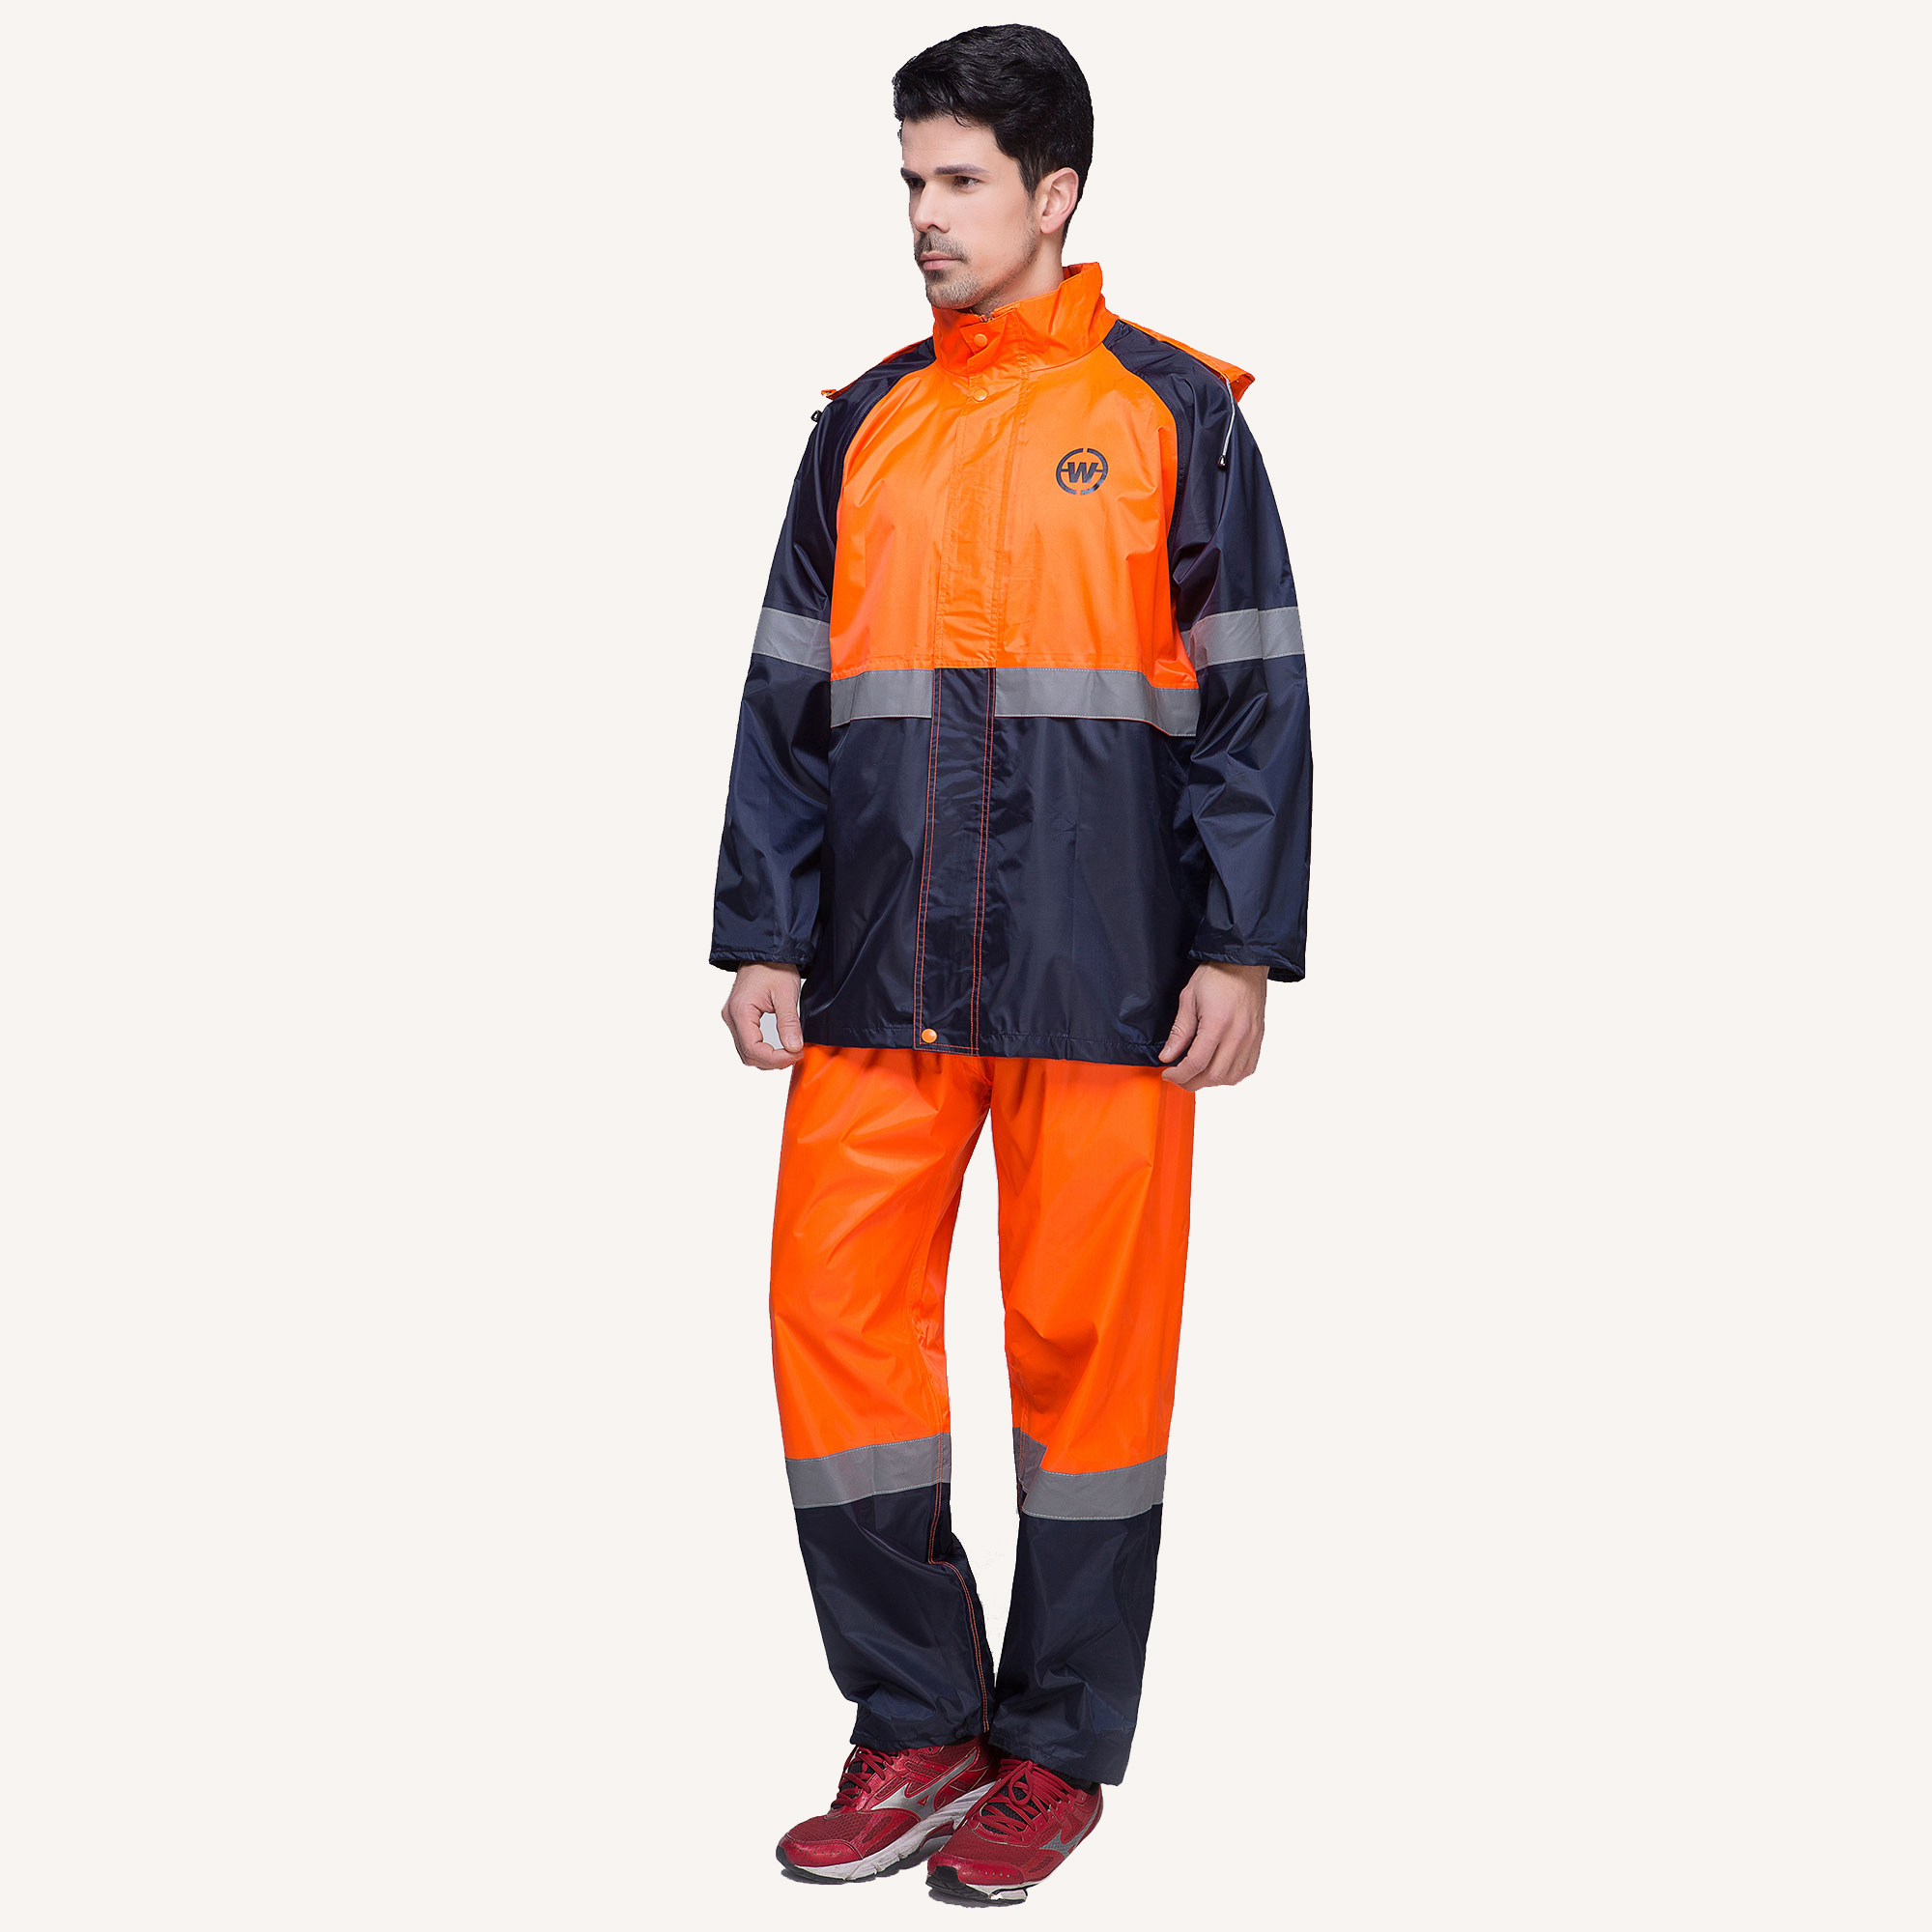 7052  Multicolor Safety Waterproof Suit Best Raincoat